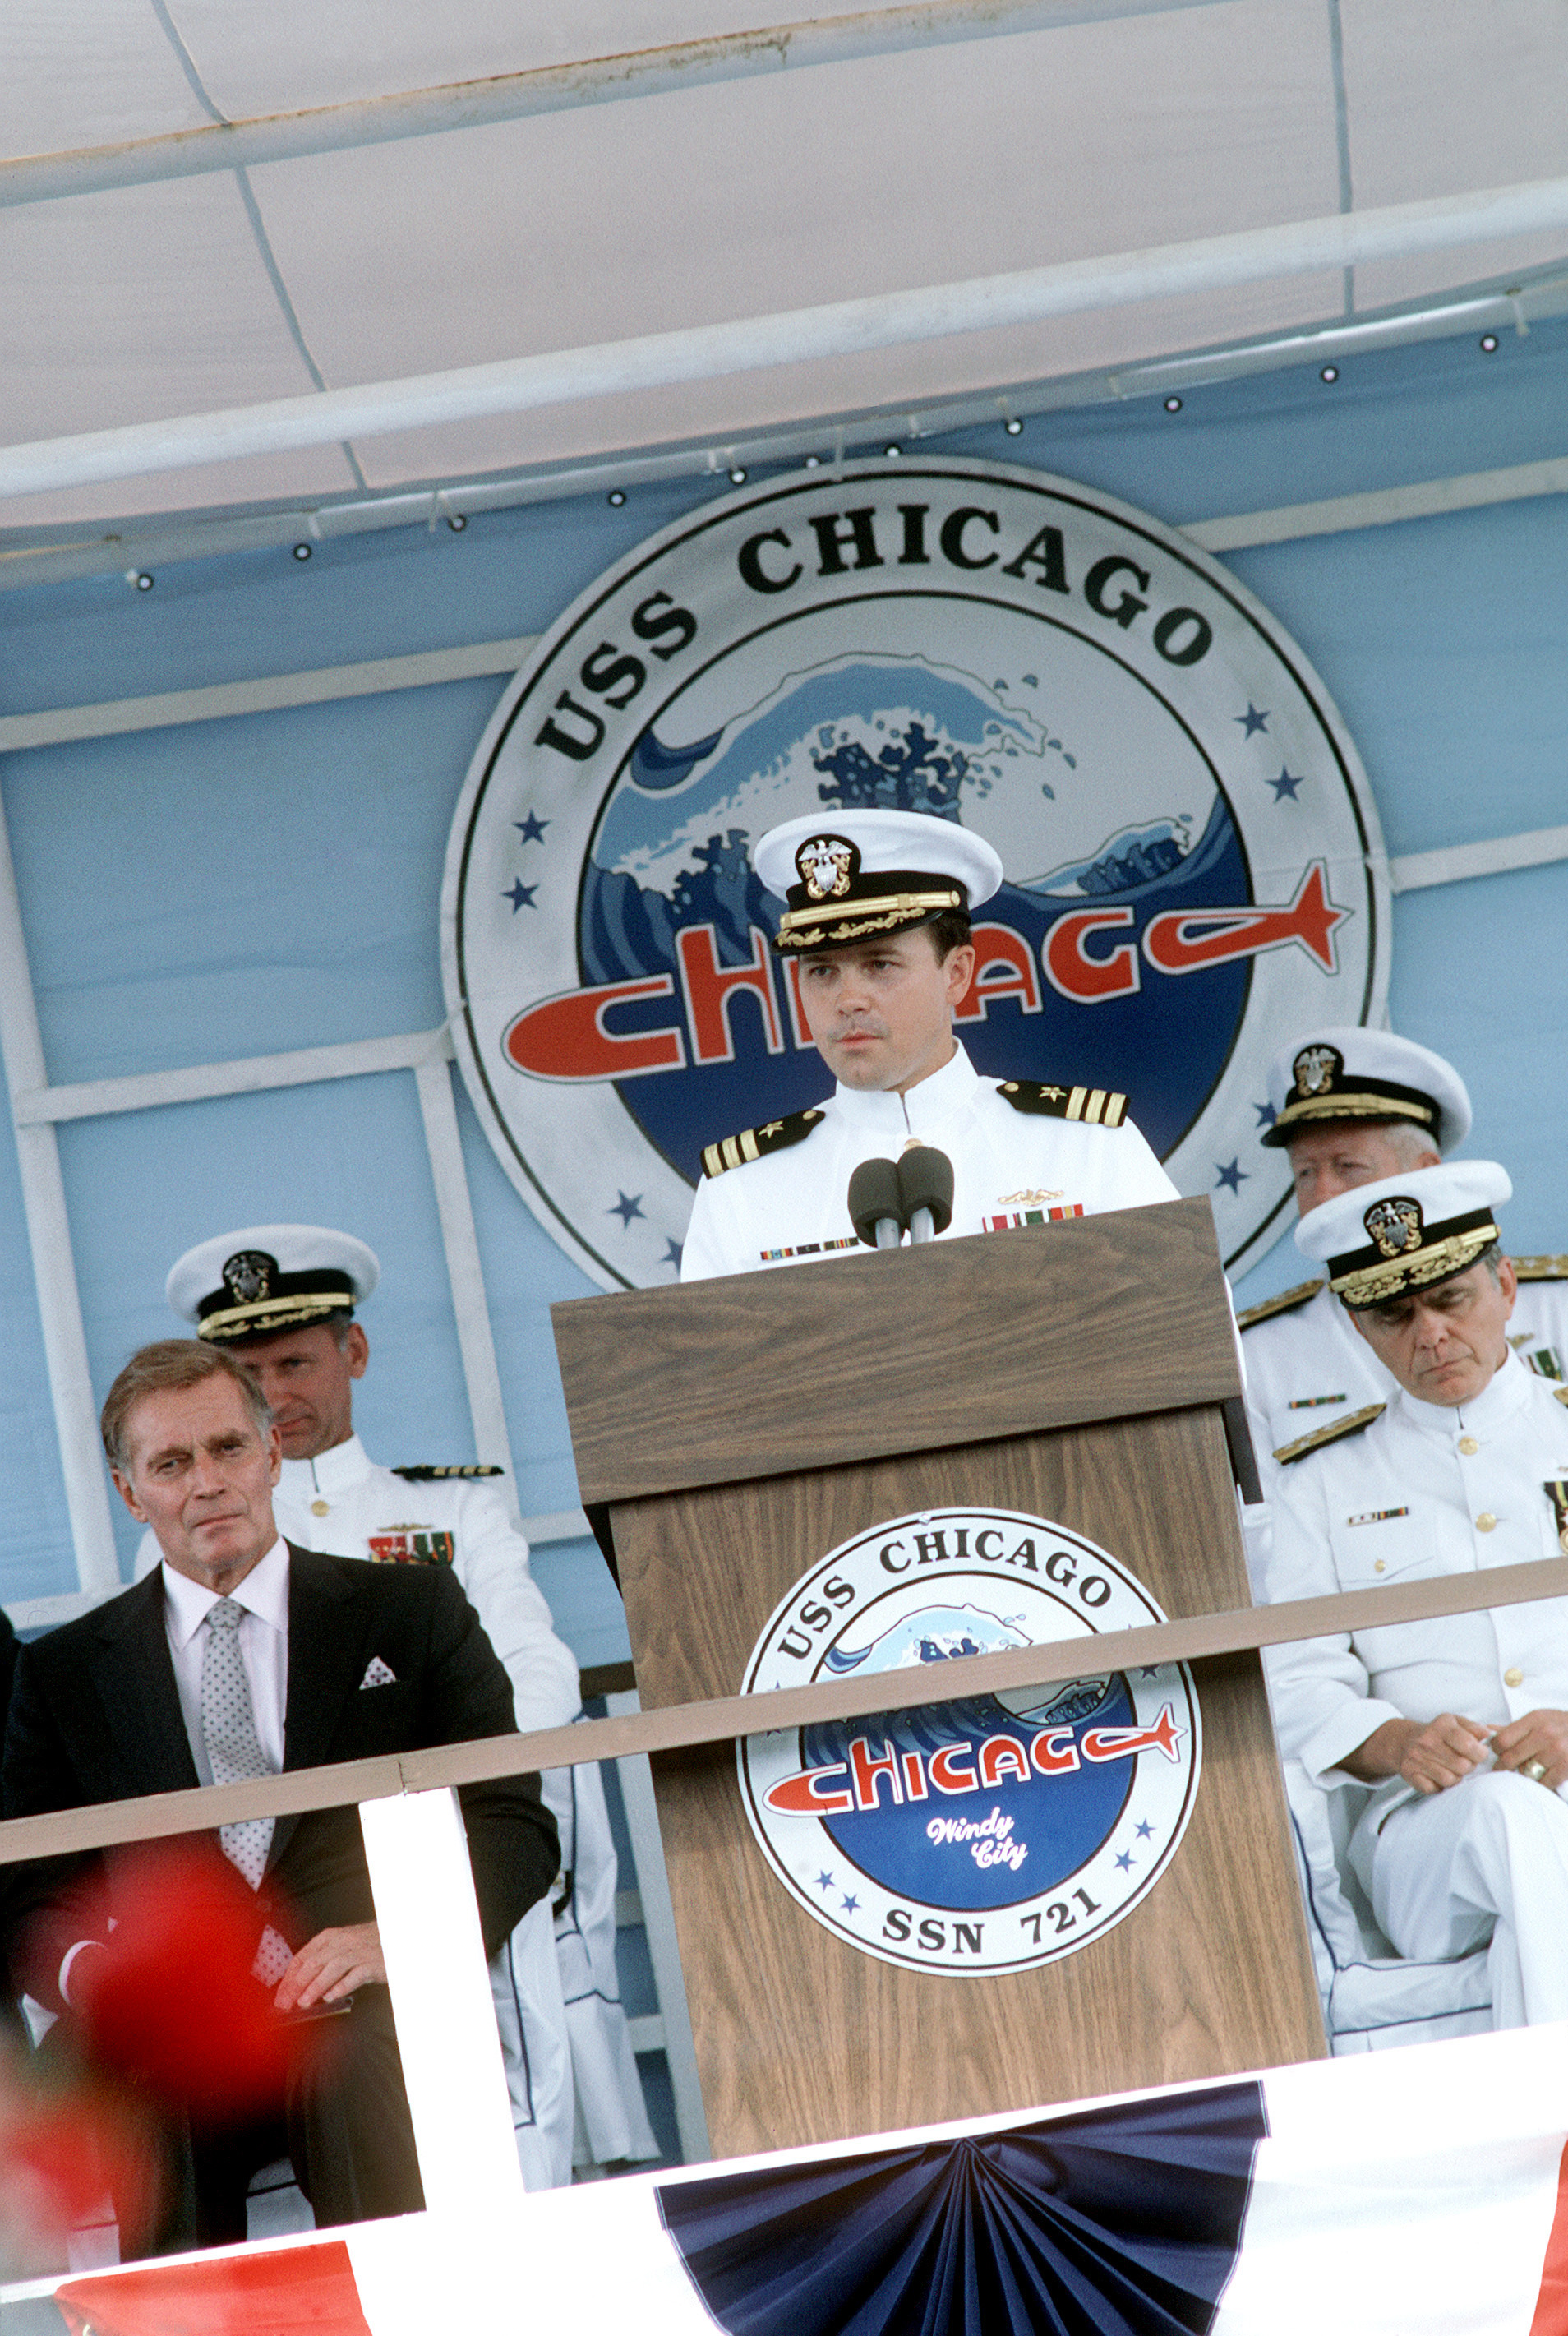 Commander (CDR) Robert B. Avery, commanding officer of the nuclear-powered attack submarine USS CHICAGO (SSN 721) speaks during the ship's commissioning. Actor Charlton Heston is seated to the left and Admiral (ADM) Kinnard R. McKee, director, Naval Nuclear Propulsion Program, is at the right